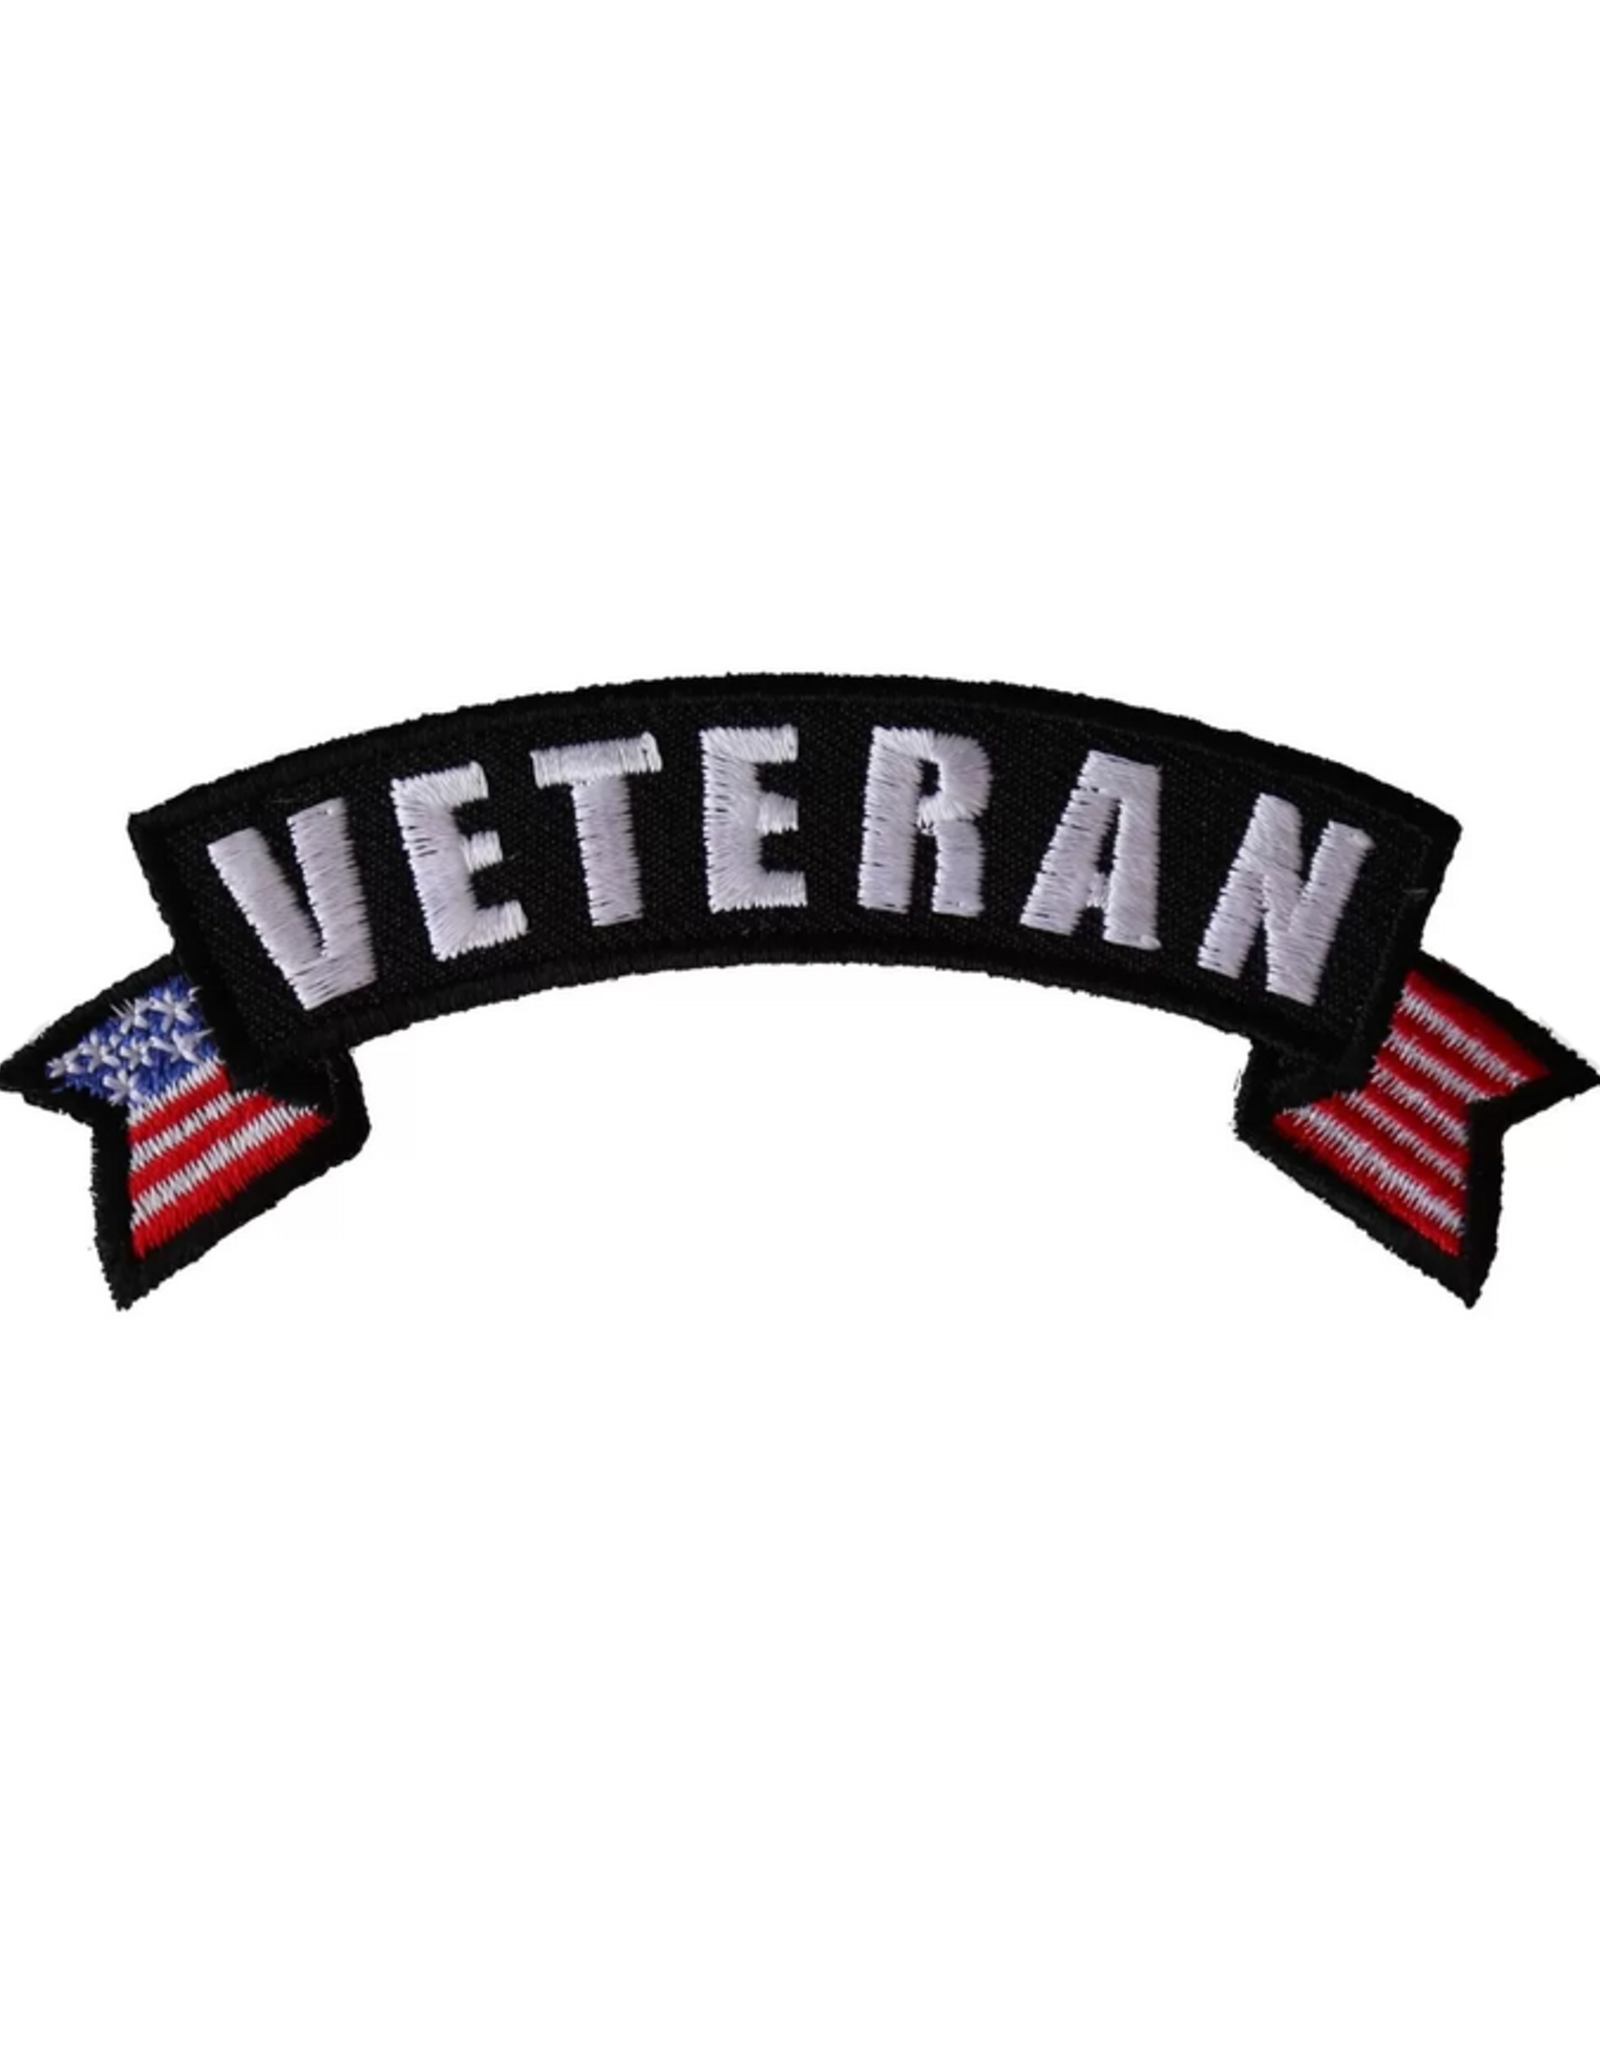 "MidMil Embroidered Veteran Tab Patch with USA tails 4"" wide x 1 1/2"" high"